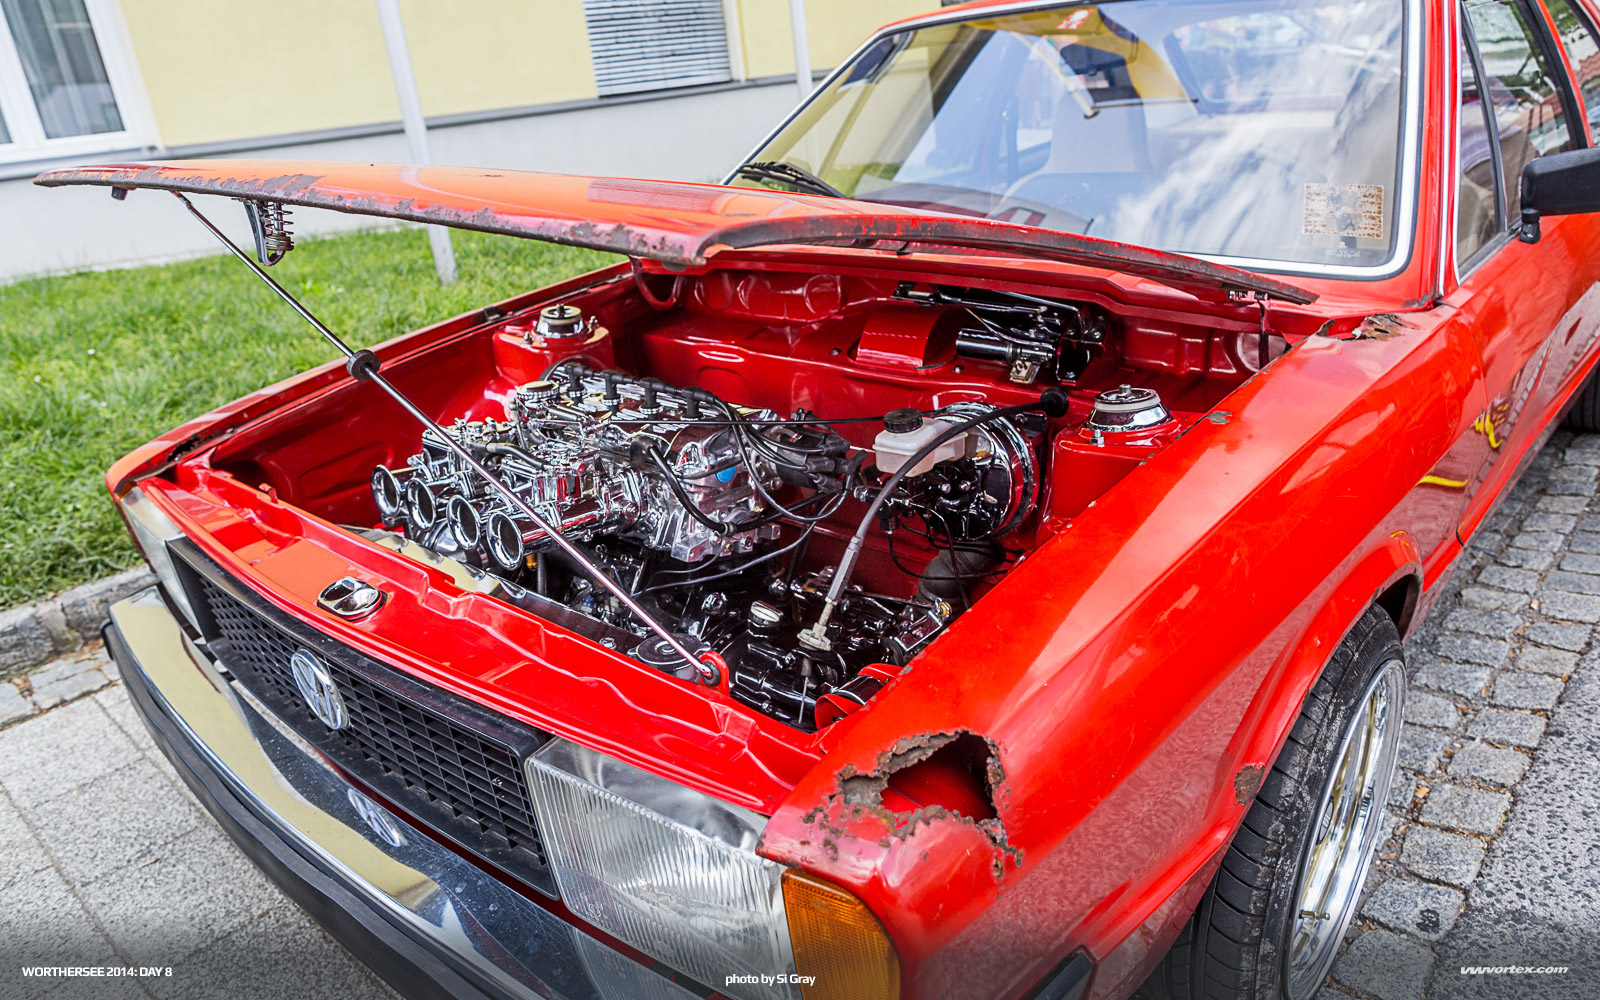 2014-Worthersee-Day-8-Si-Gray-1115